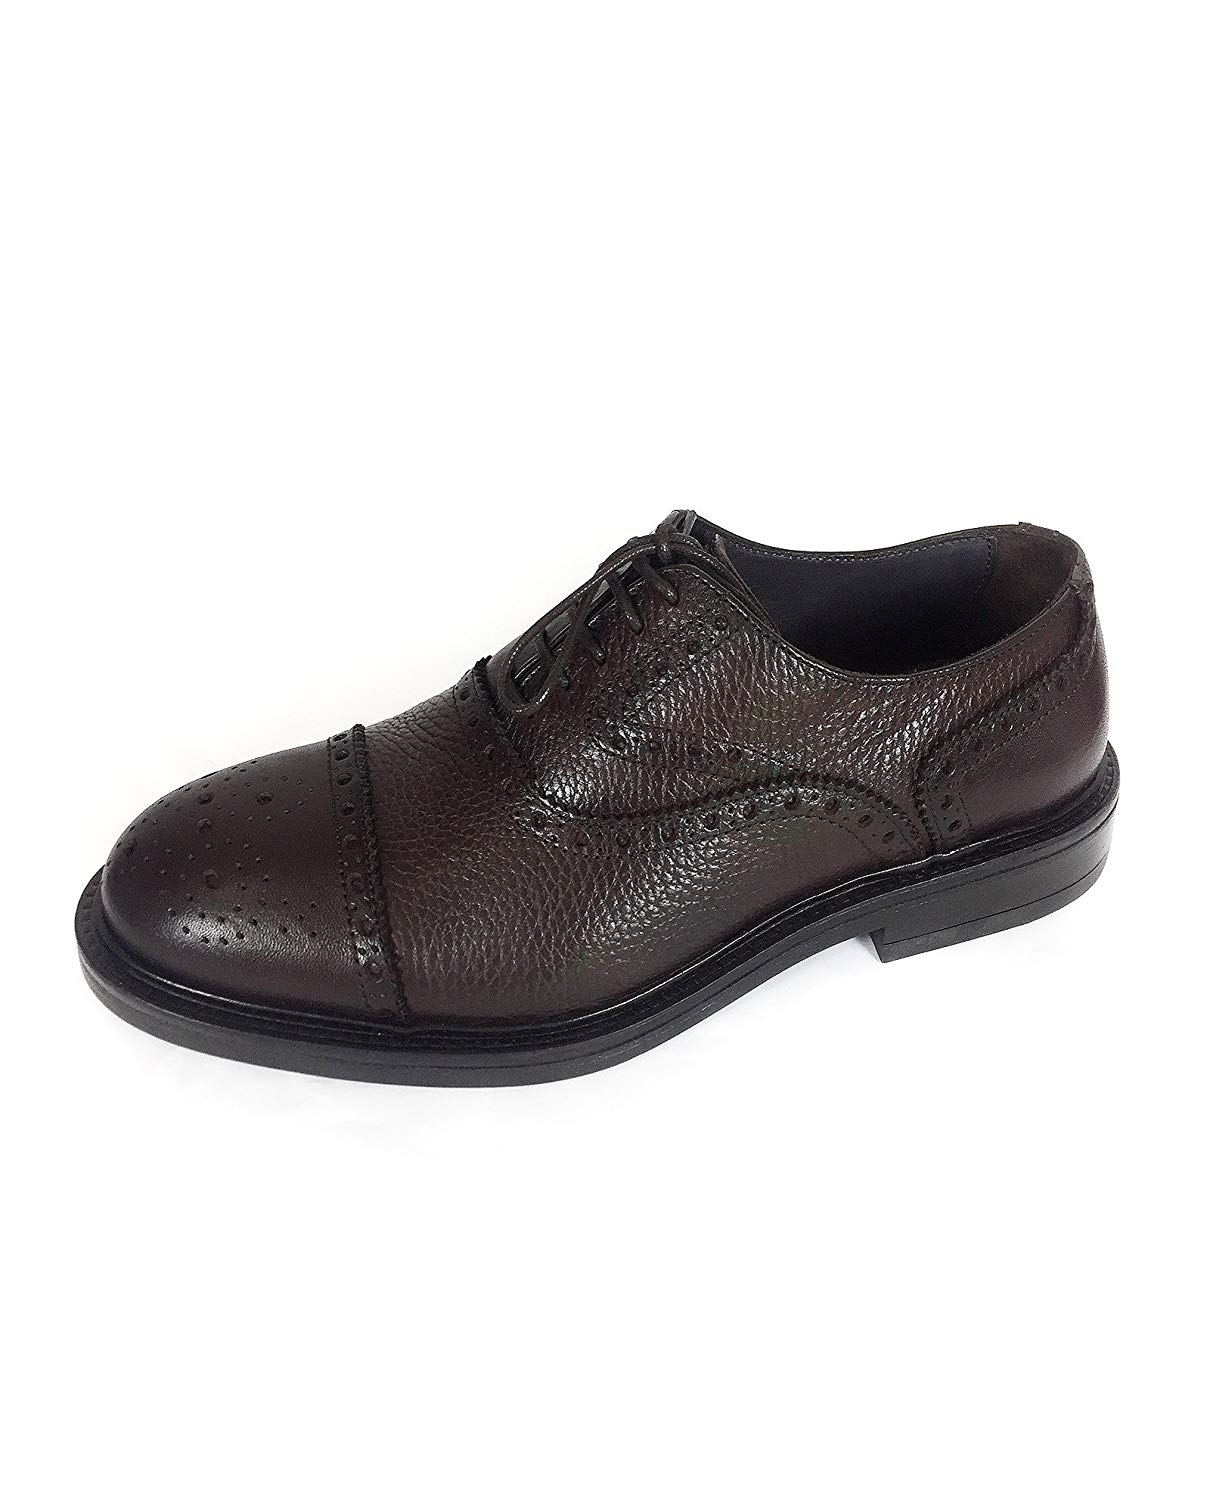 bc8c4d0bd Buy Massimo Dutti Men Brown nappa leather oxford shoes 8209/222 (43 ...